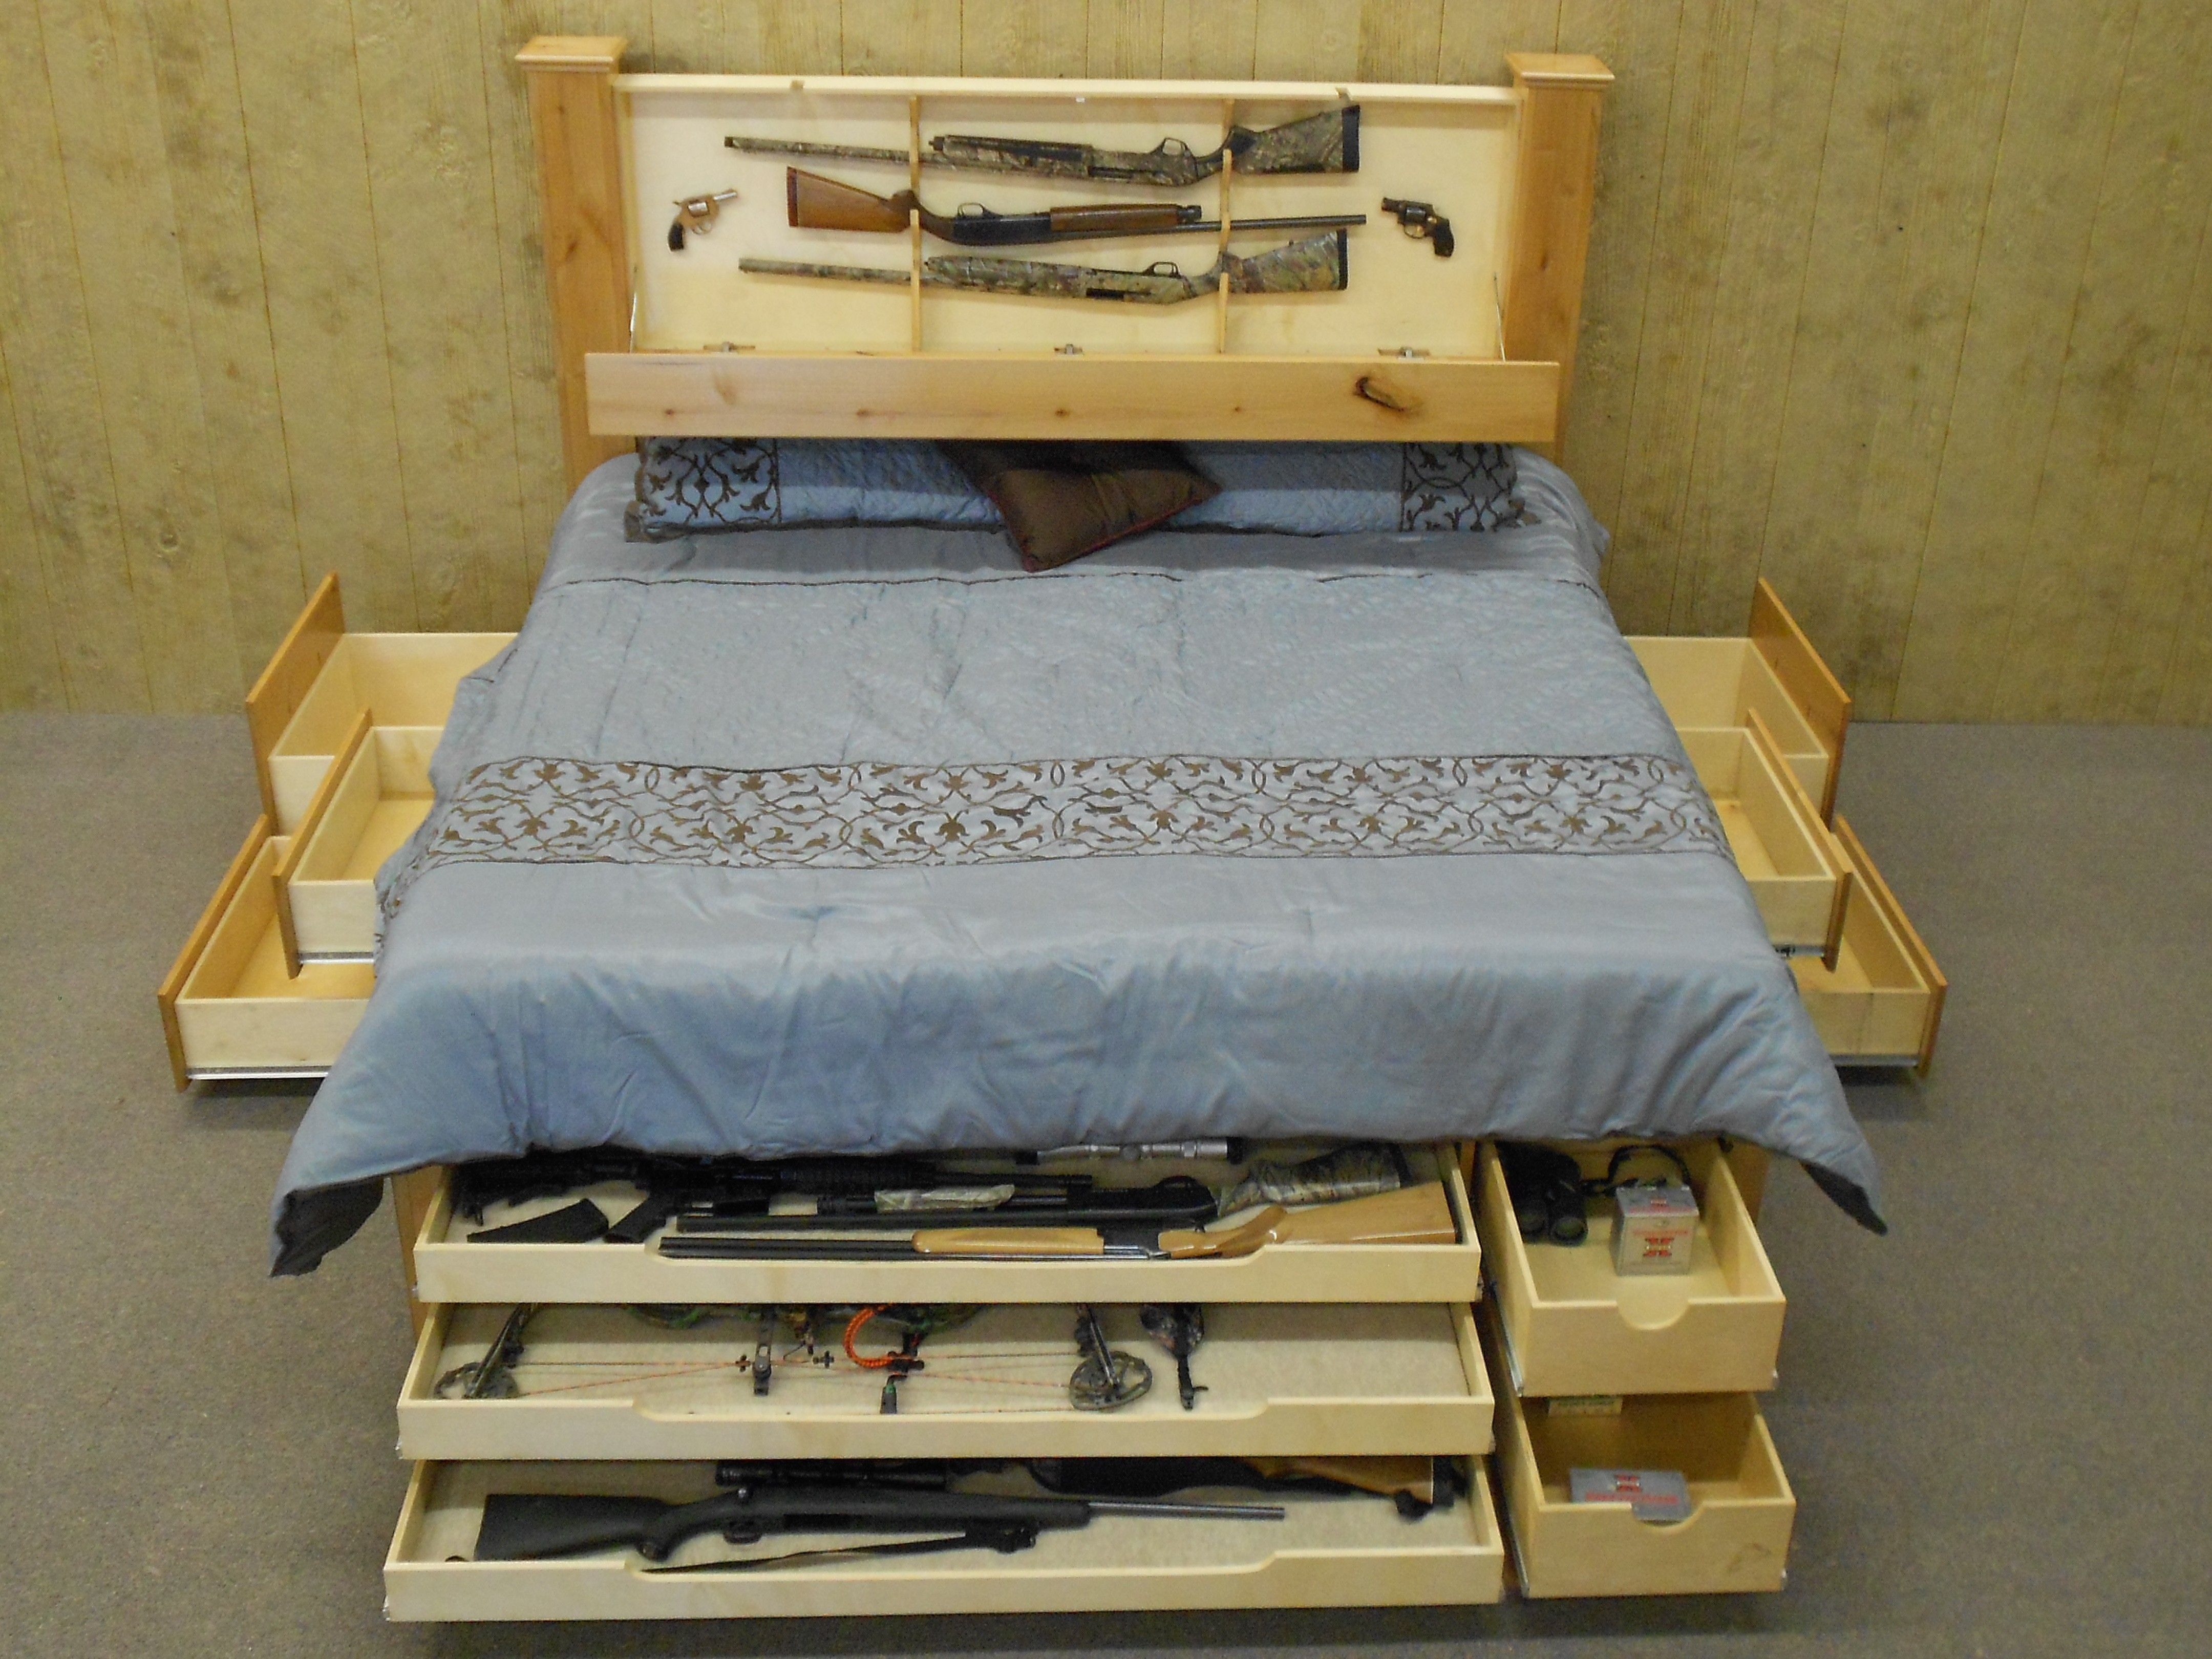 Concealed Storage King Size Bed By L C S I Concealed Storage